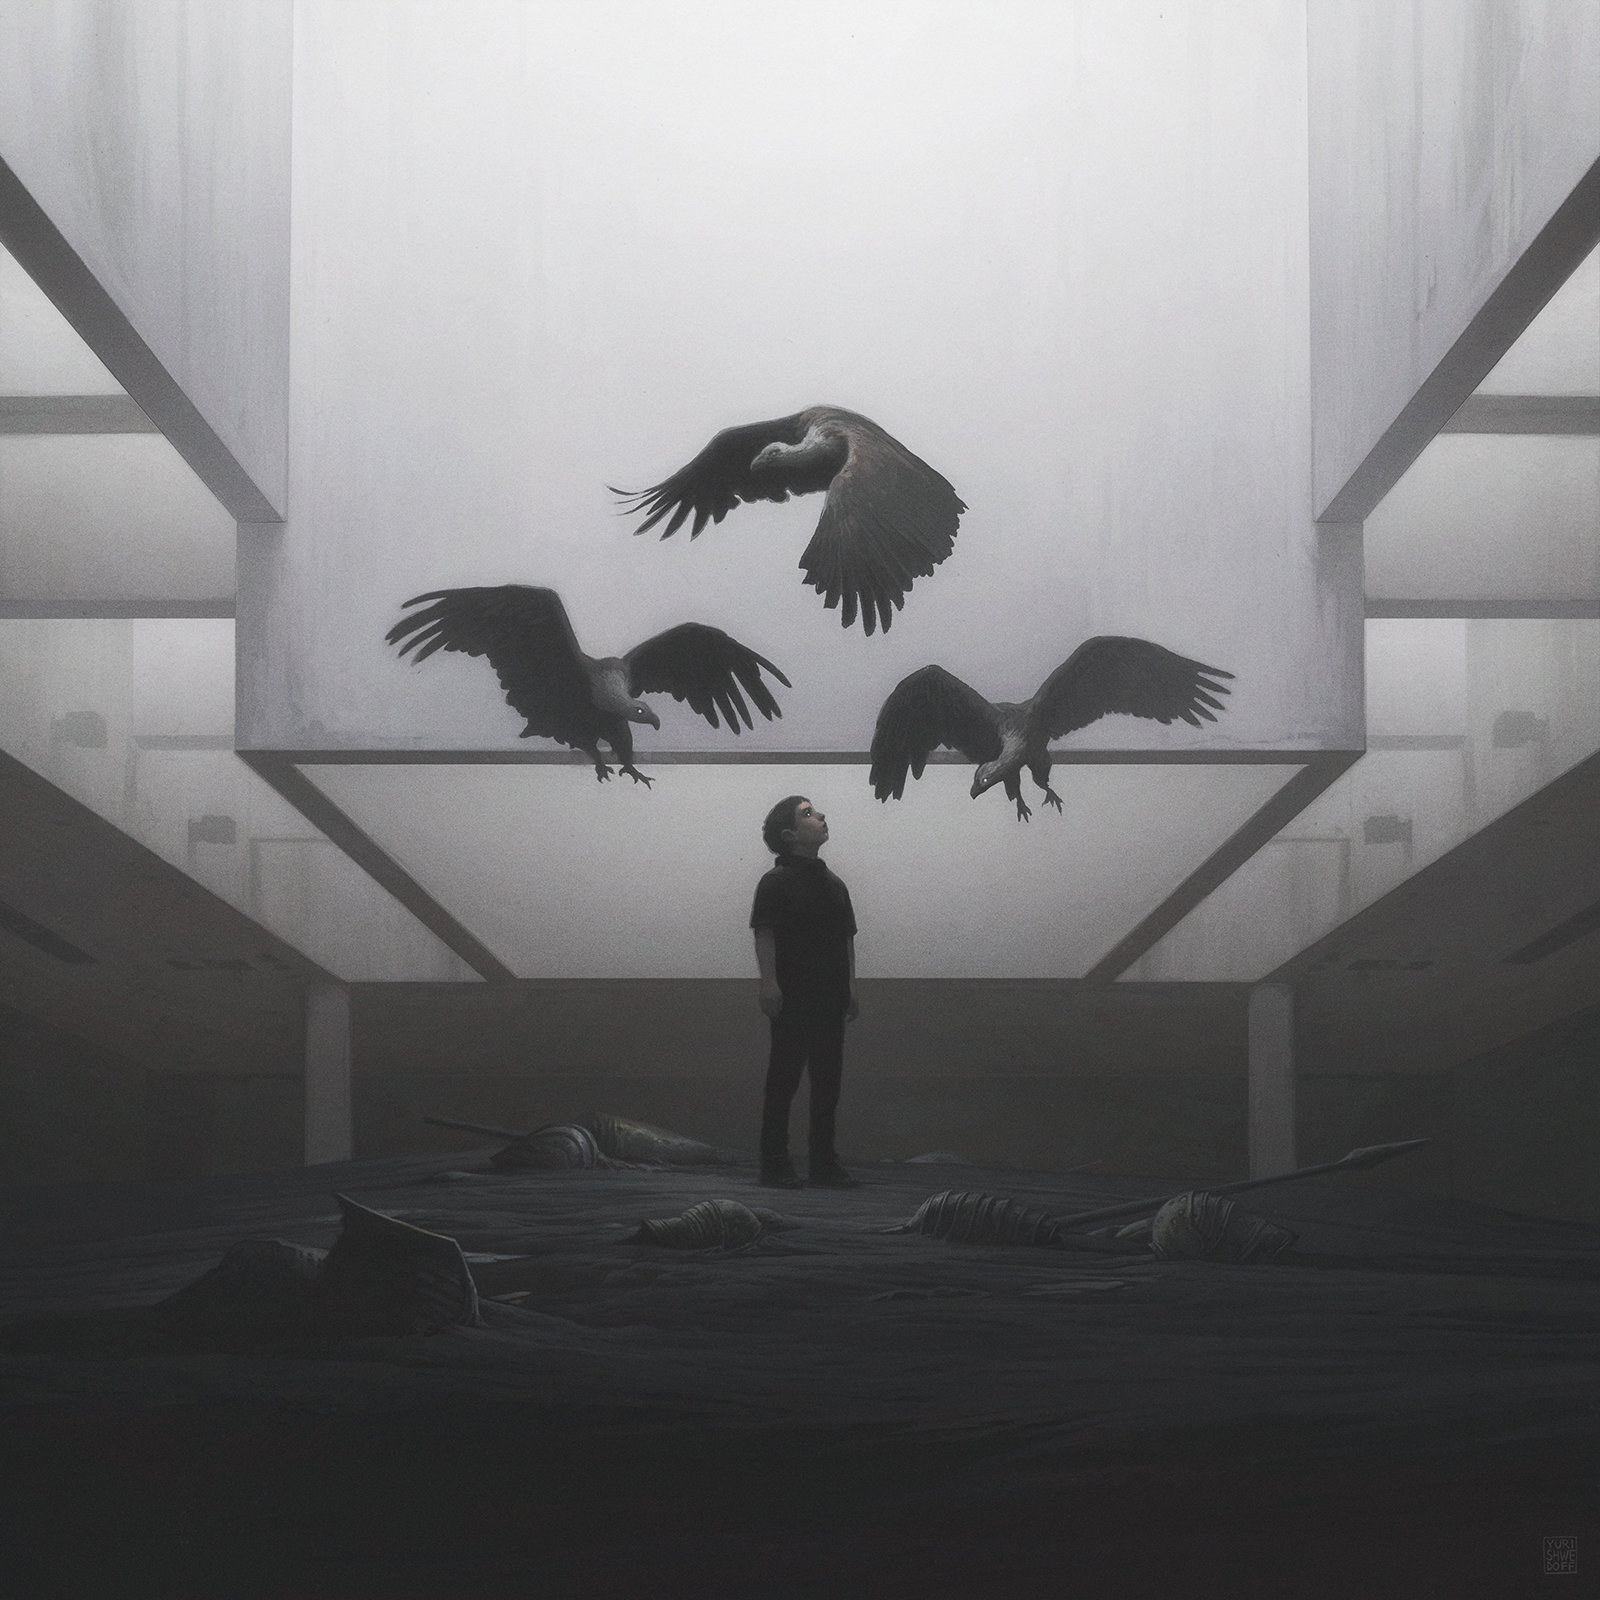 [Reflexion] Les oeuvres qui vous inspirent - Page 2 Yuri-shwedoff-vultures